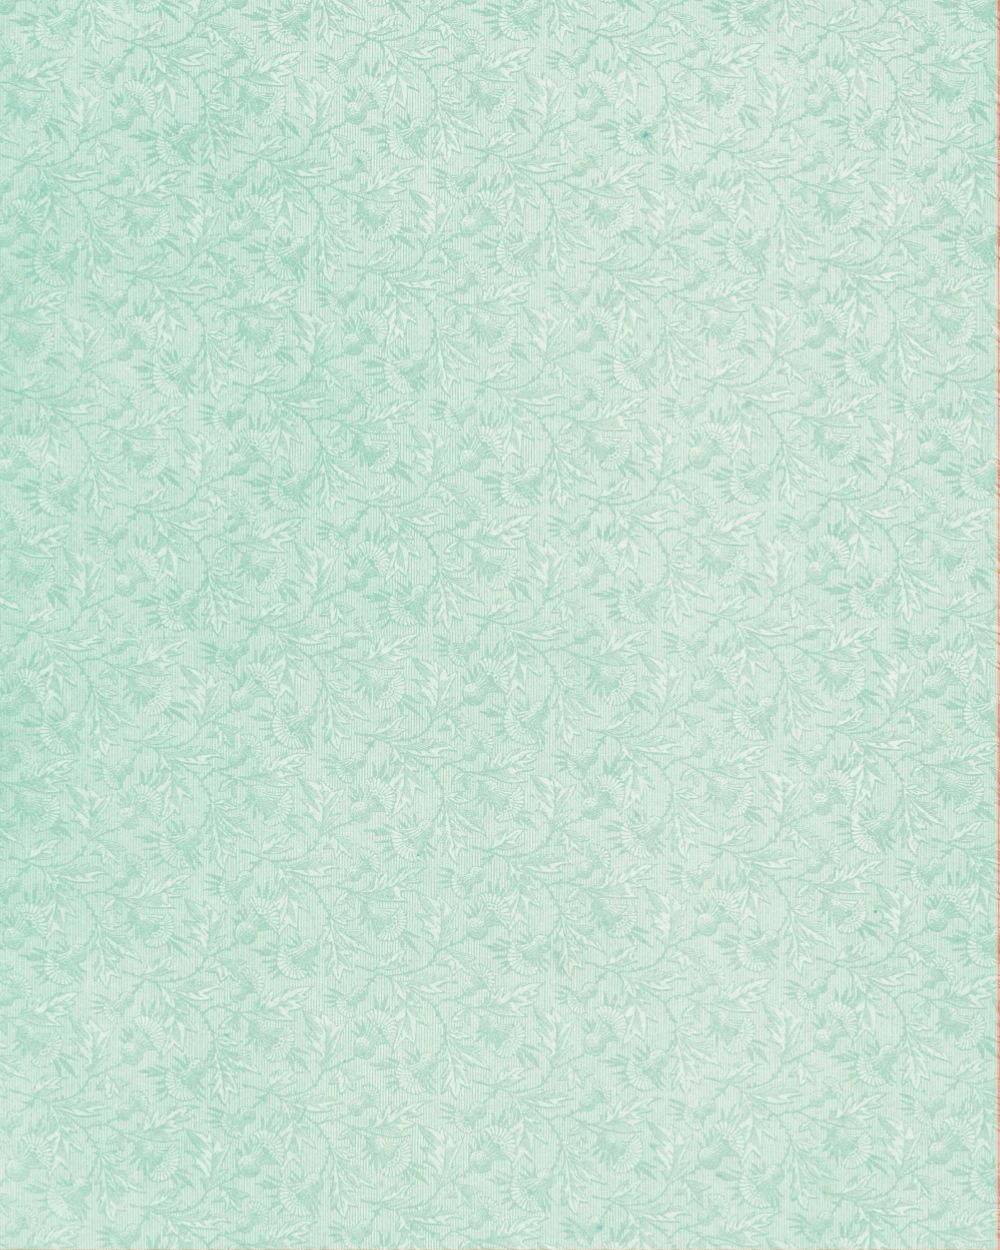 Free Floral Paper Backgrounds | Backgrounds! | Ceramic Subway Tile - Free Printable Card Stock Paper